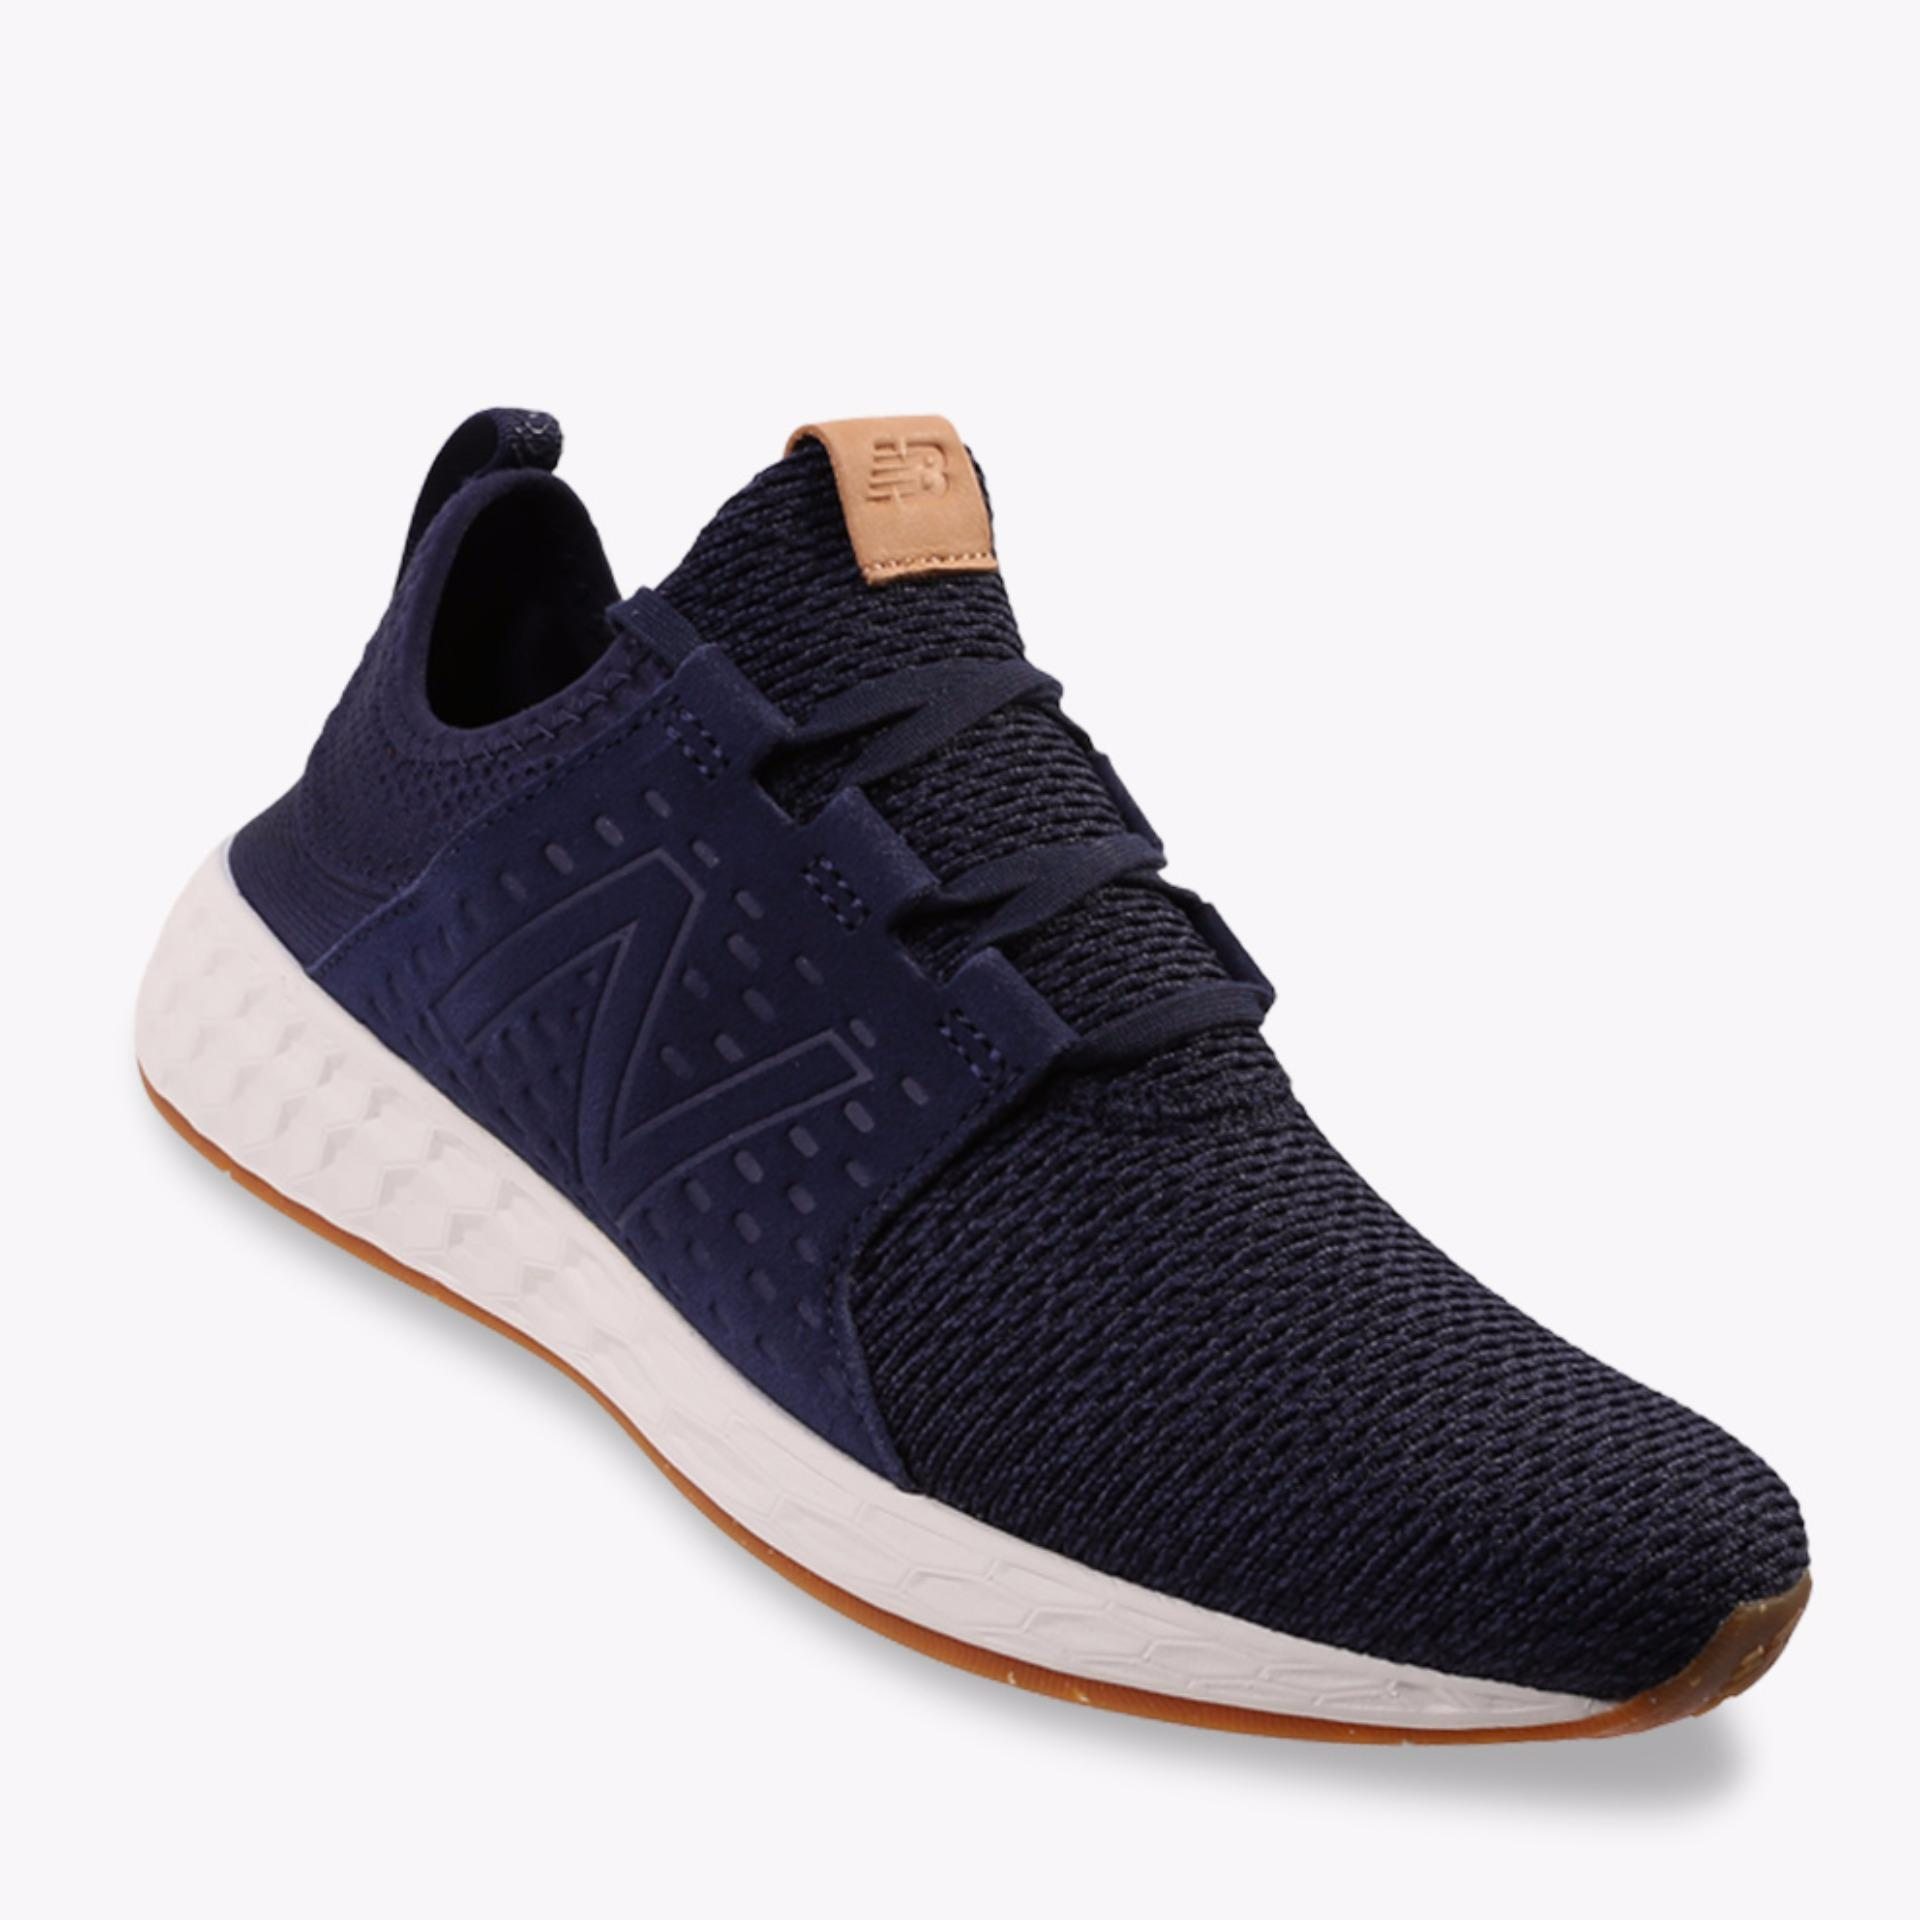 Toko New Balance Fresh Foam Cruz Men S Running Shoes Navy Termurah Indonesia